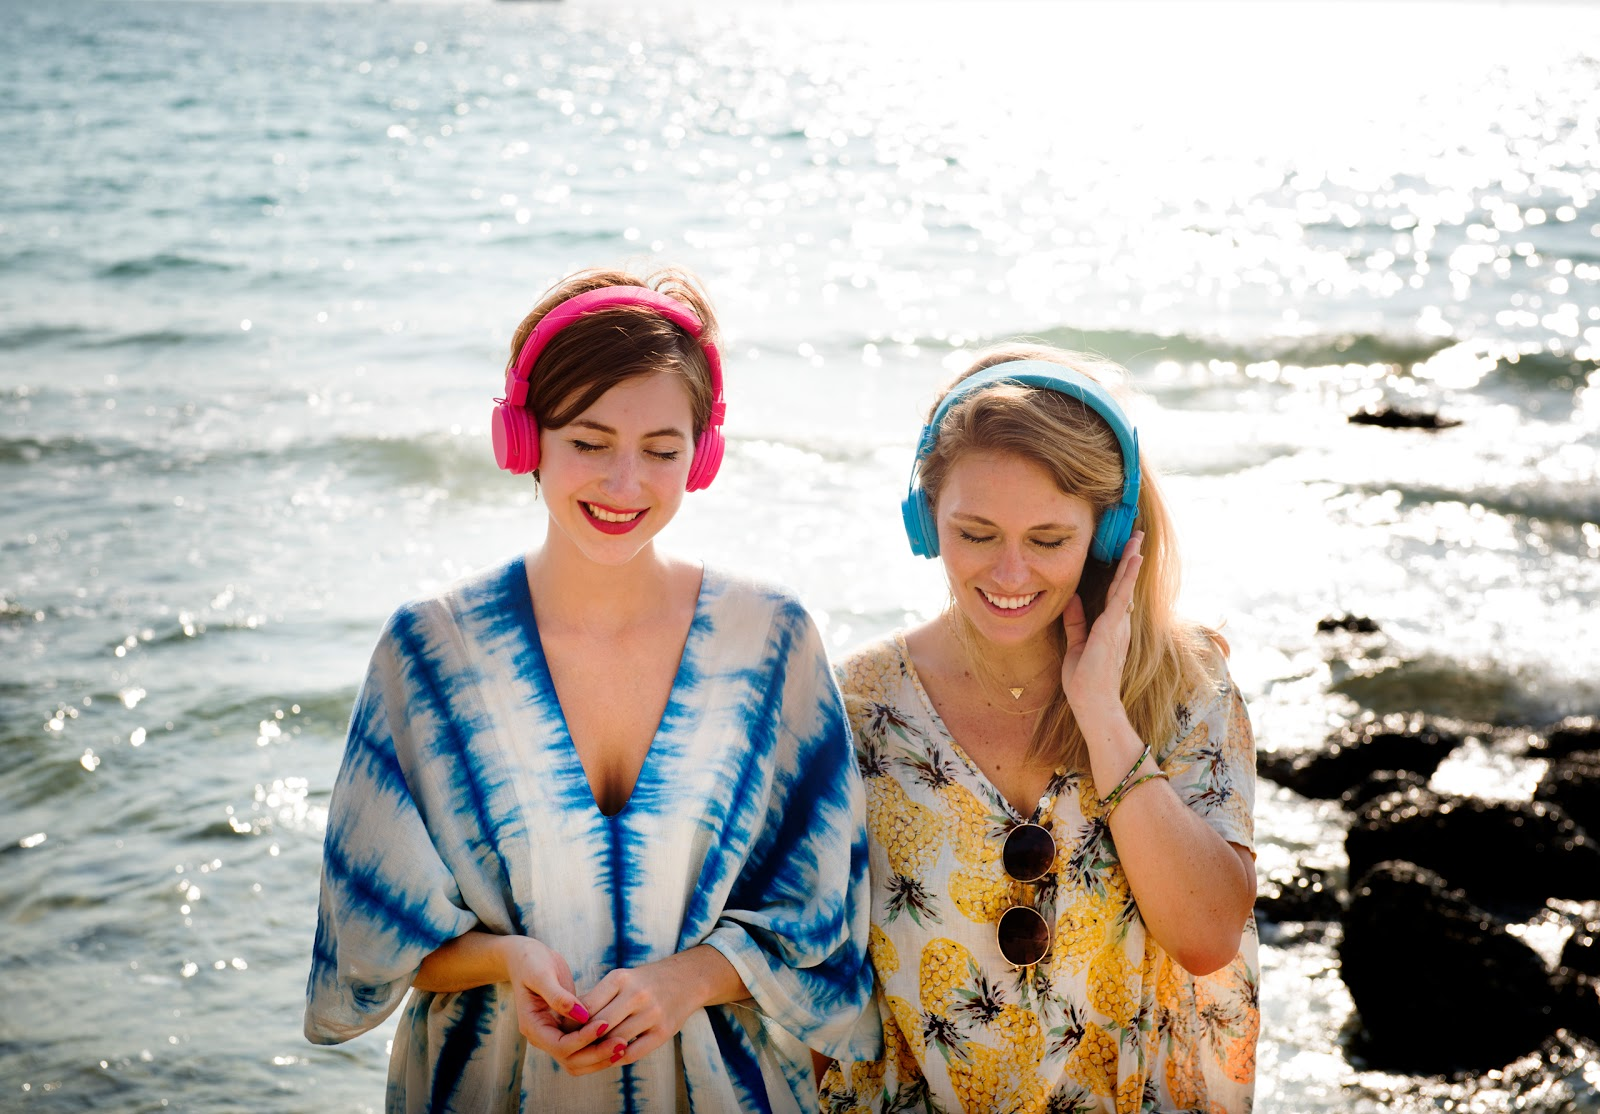 Girls With Color Headphones On Beach